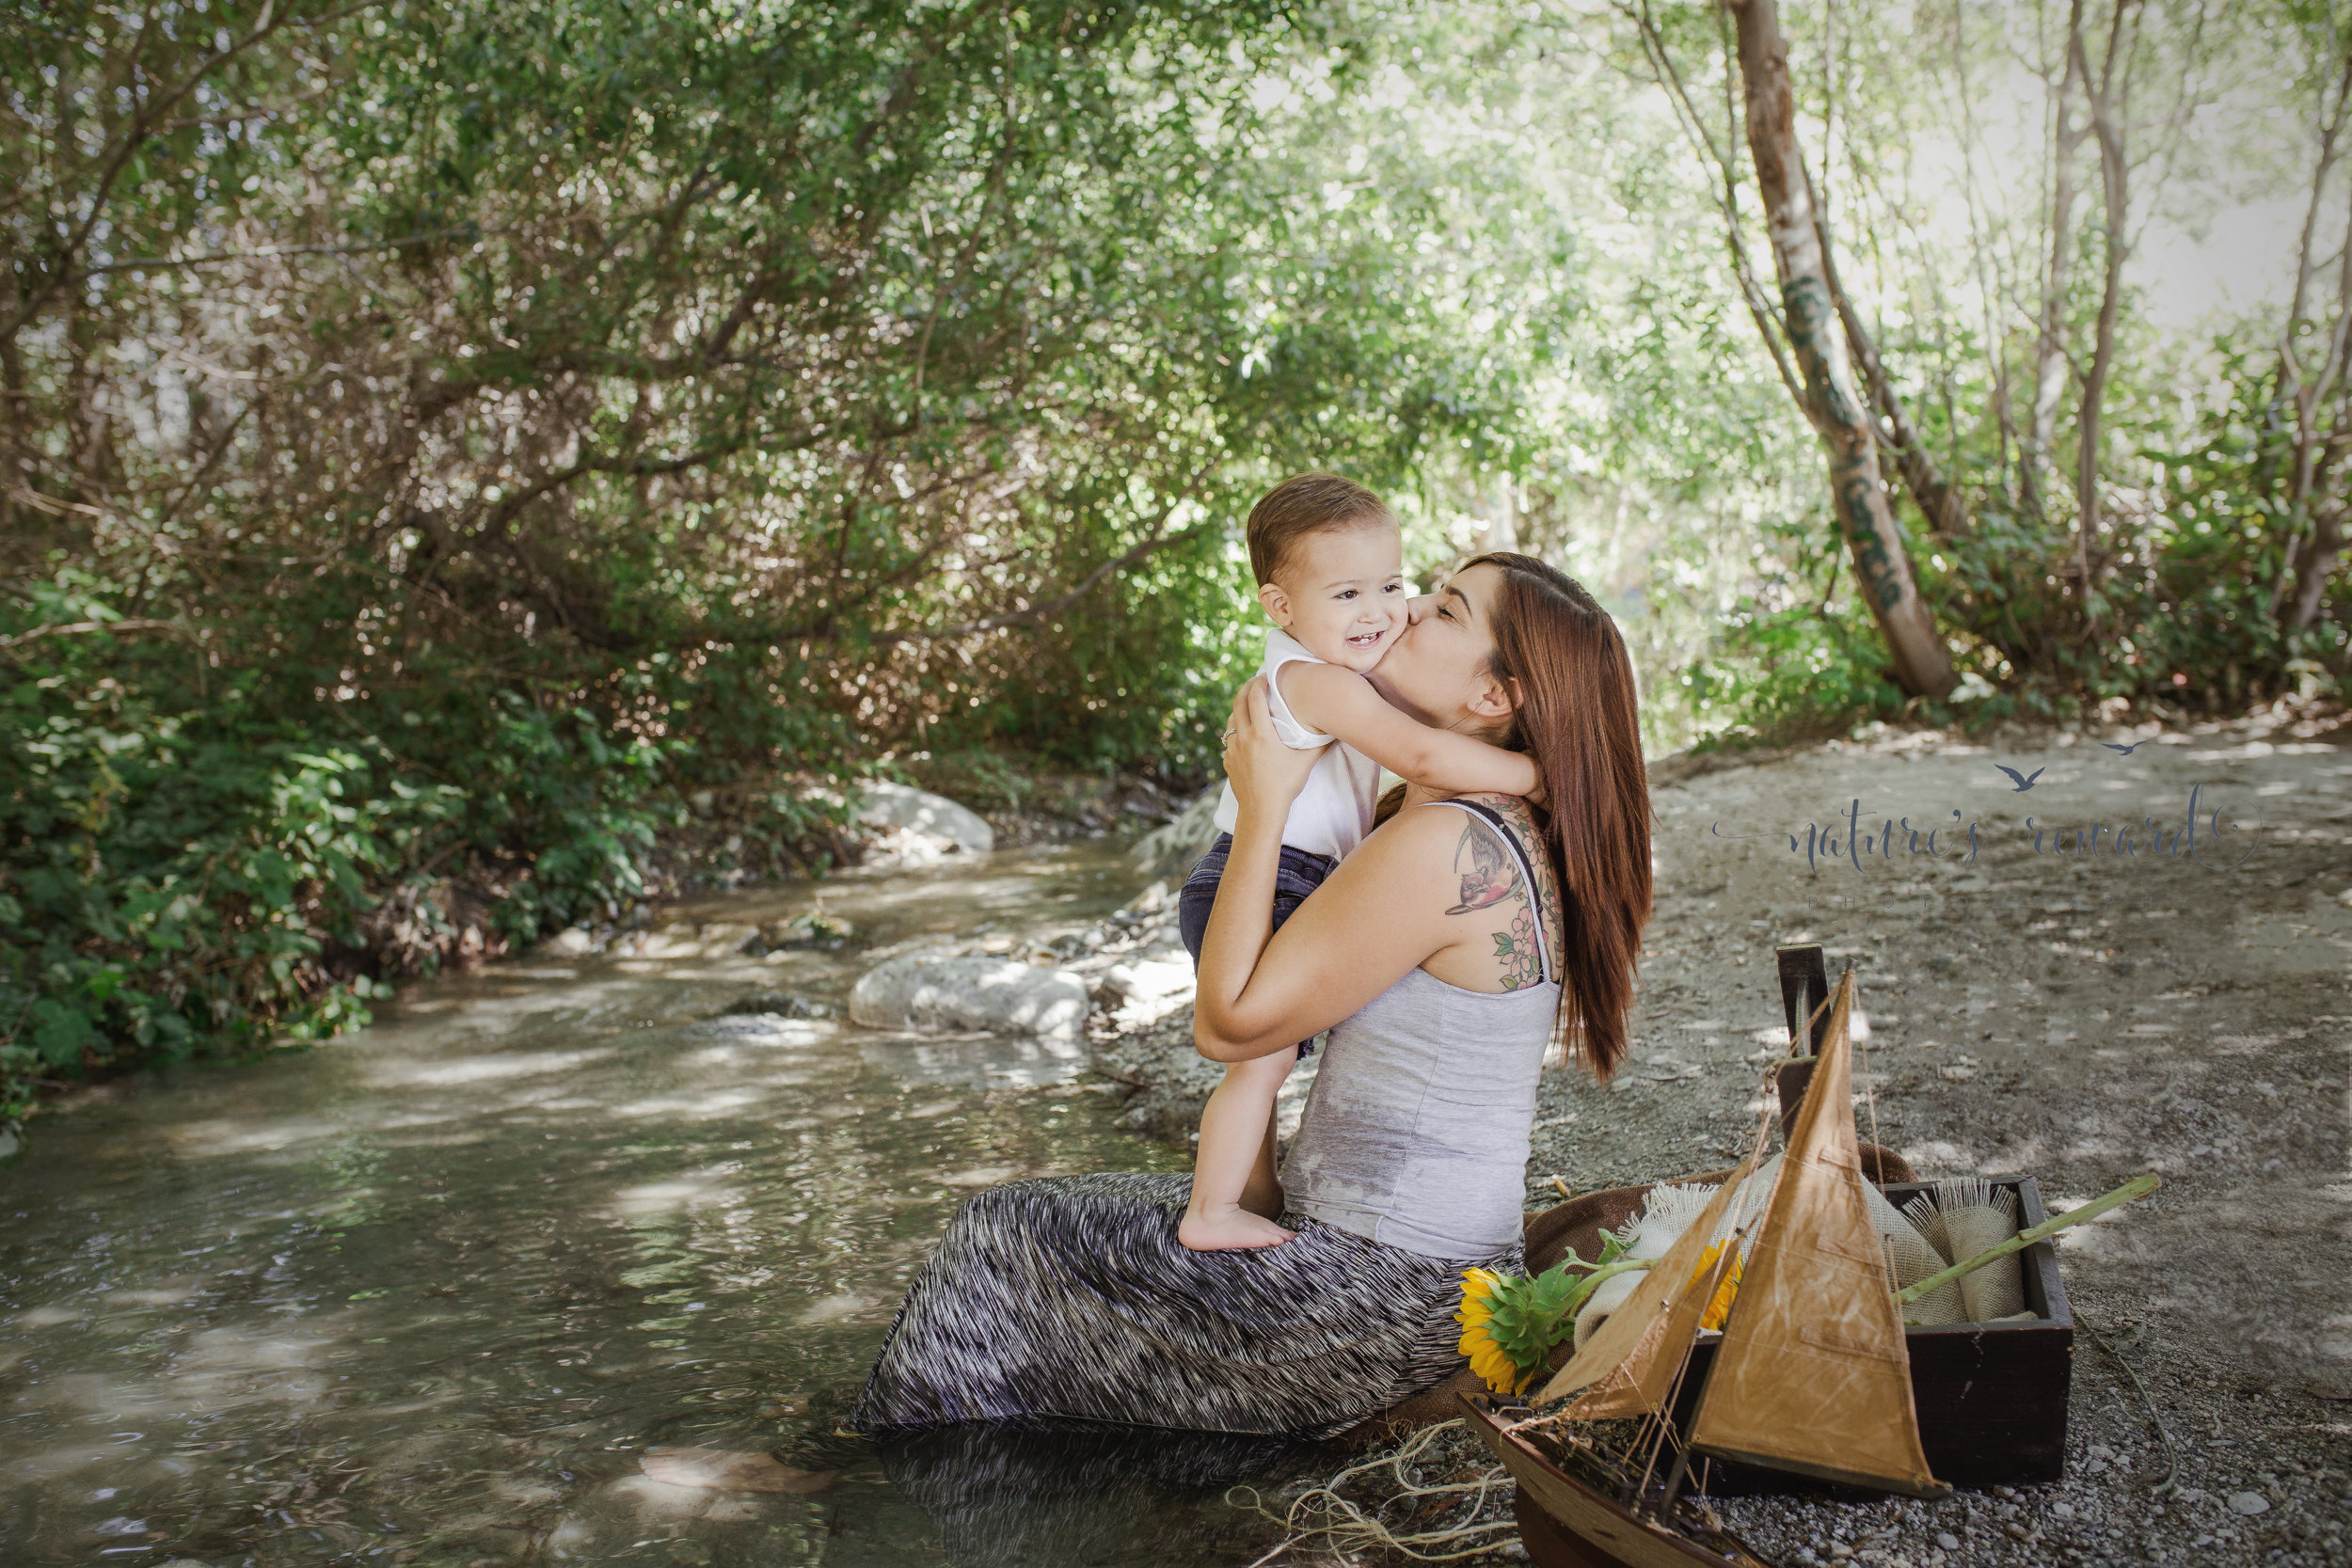 He hugged her and smiled with joy in this mother and son creekside portrai. Image by Nature's Reward Photography, a Southern California newborn, family and child photographer